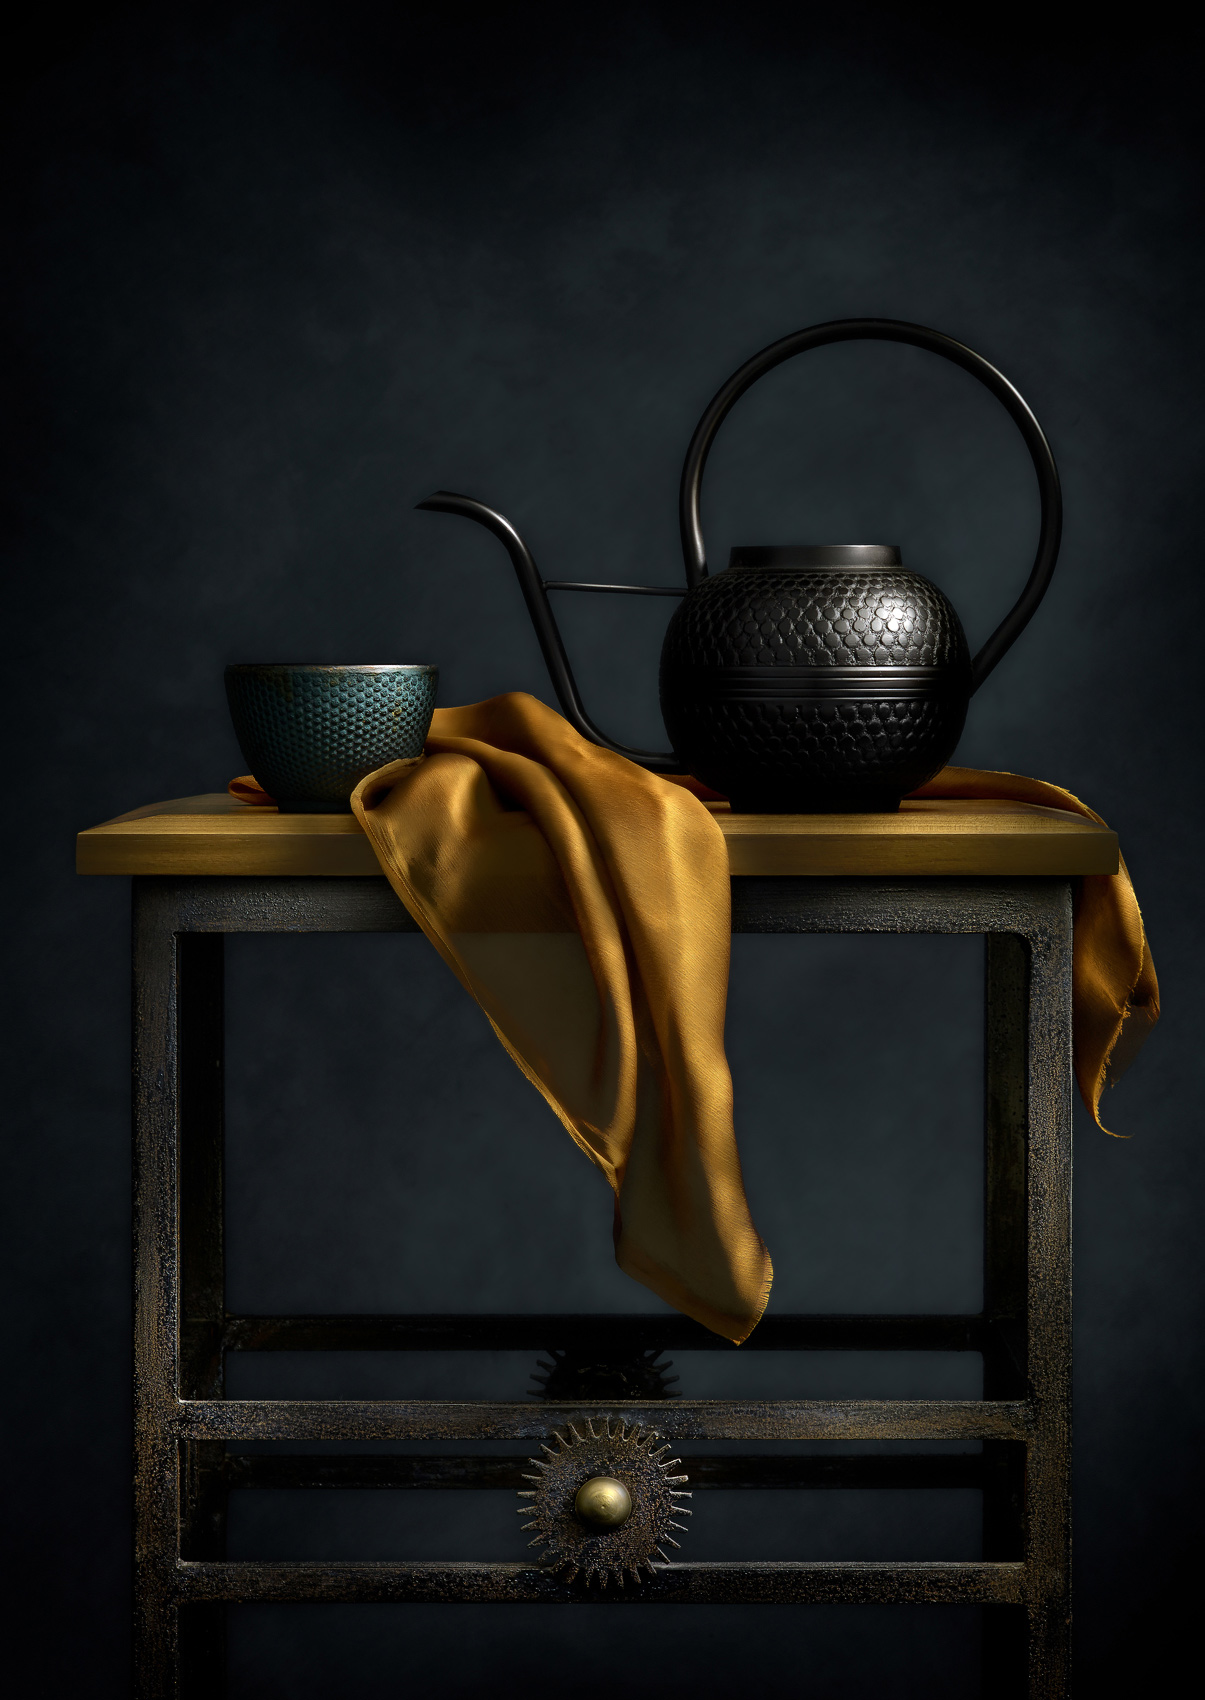 Still_Life_with_Teapot_and_Table_LB.jpg